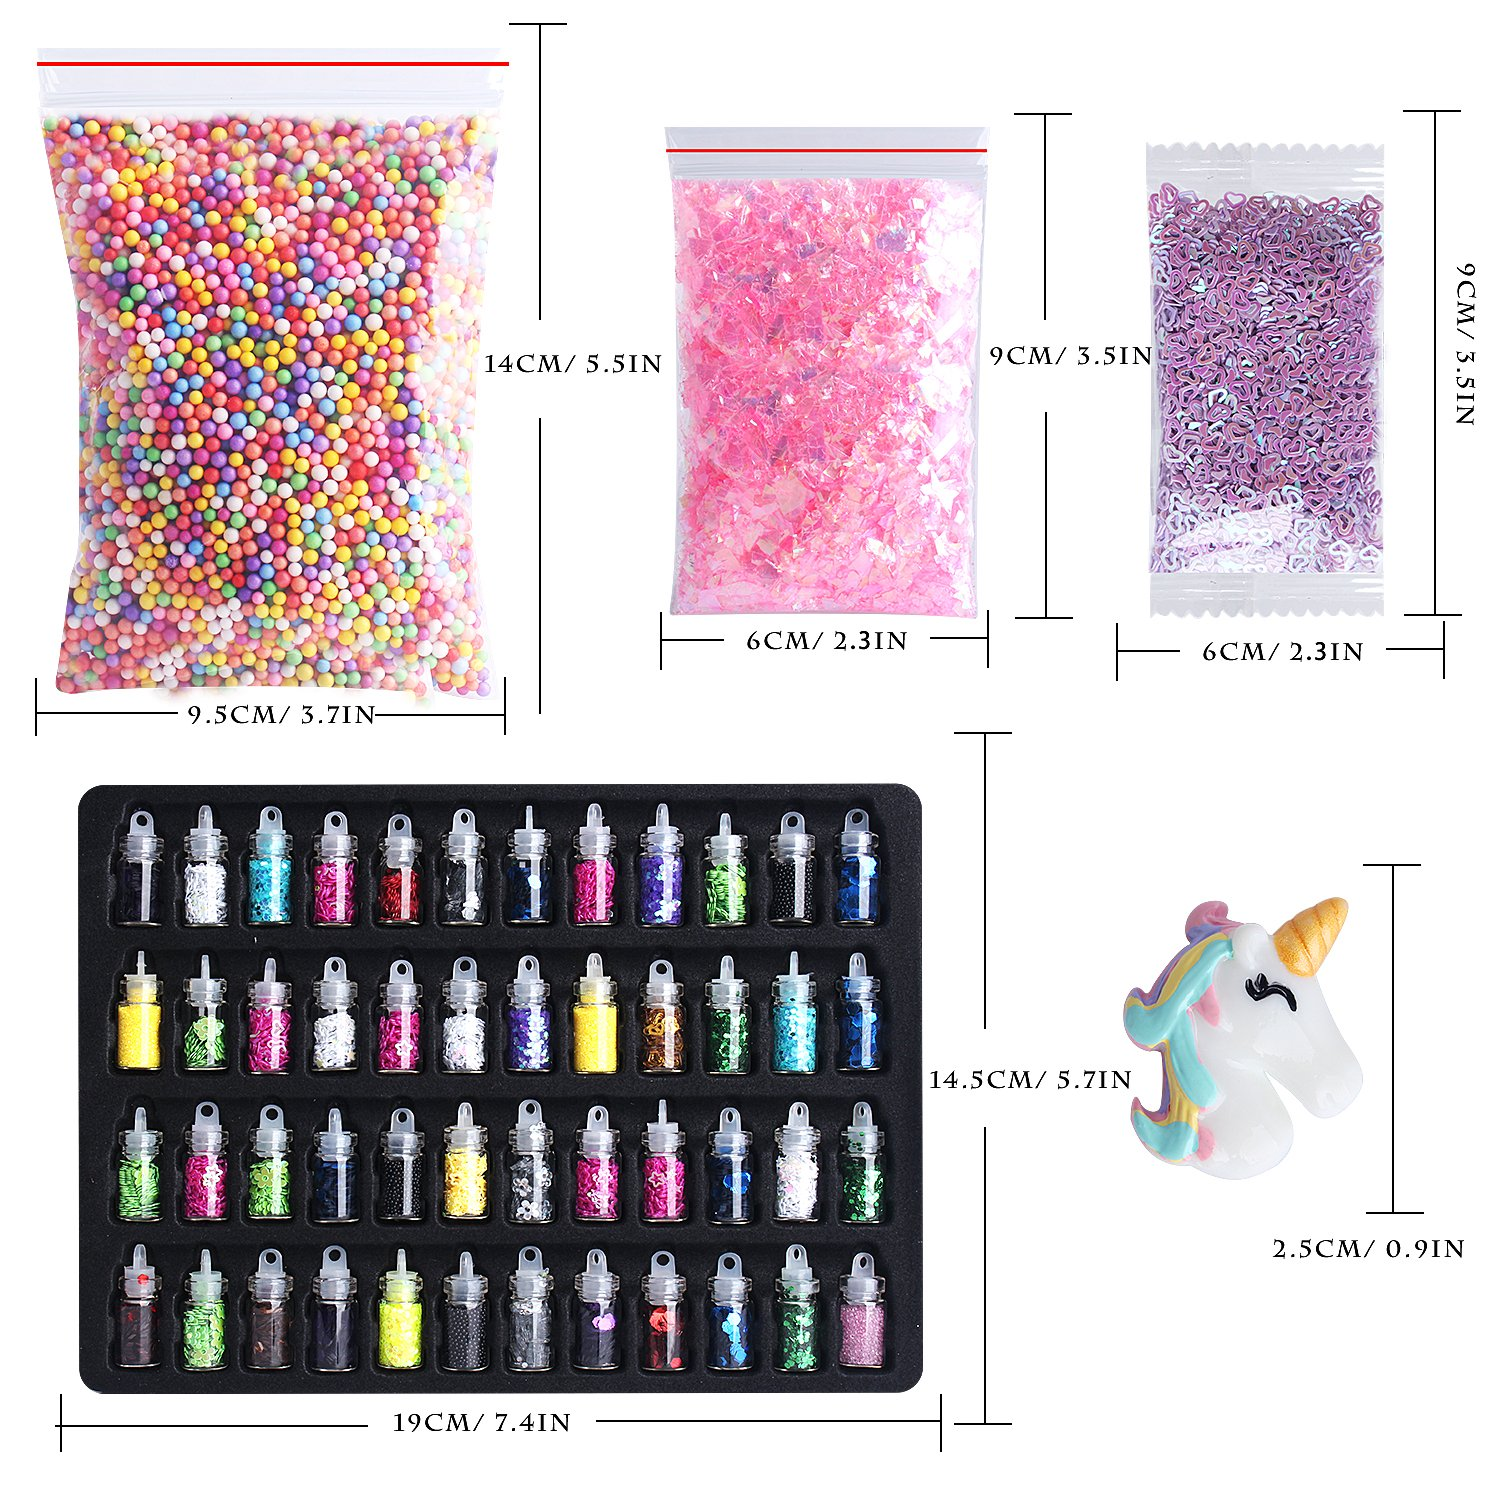 Slime Supplies Kit, Outee 91 paquetes Diy Slime Kit incluyen Bolas de espuma, Fishbowl Beads, Glitter Jars, Fruit Slices, Rainbow Pearl, Shell, letras ...